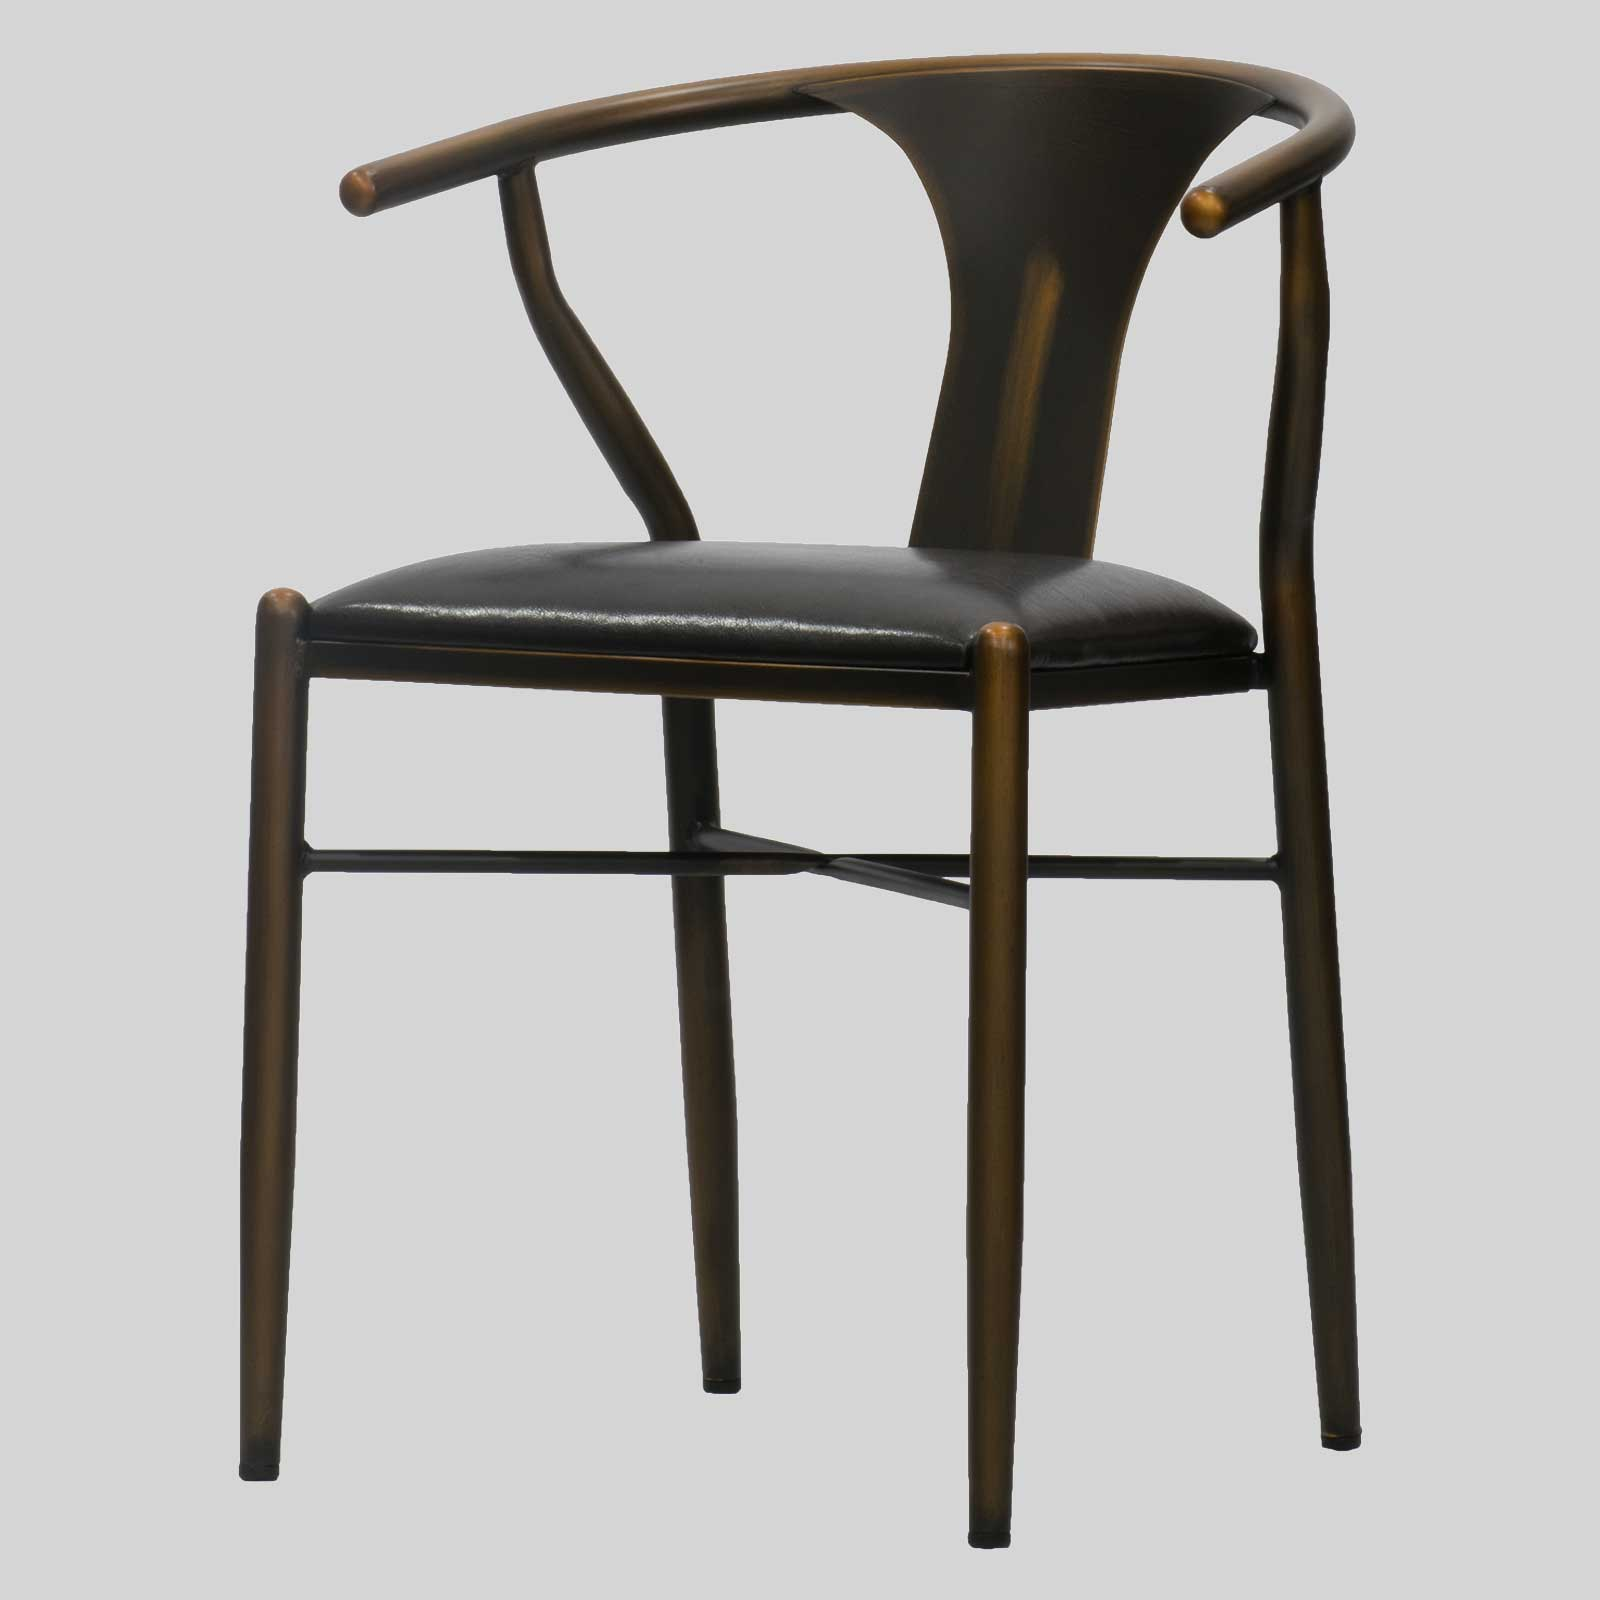 coleman chair accessories rubber feet replacement restaurant in distressed copper the